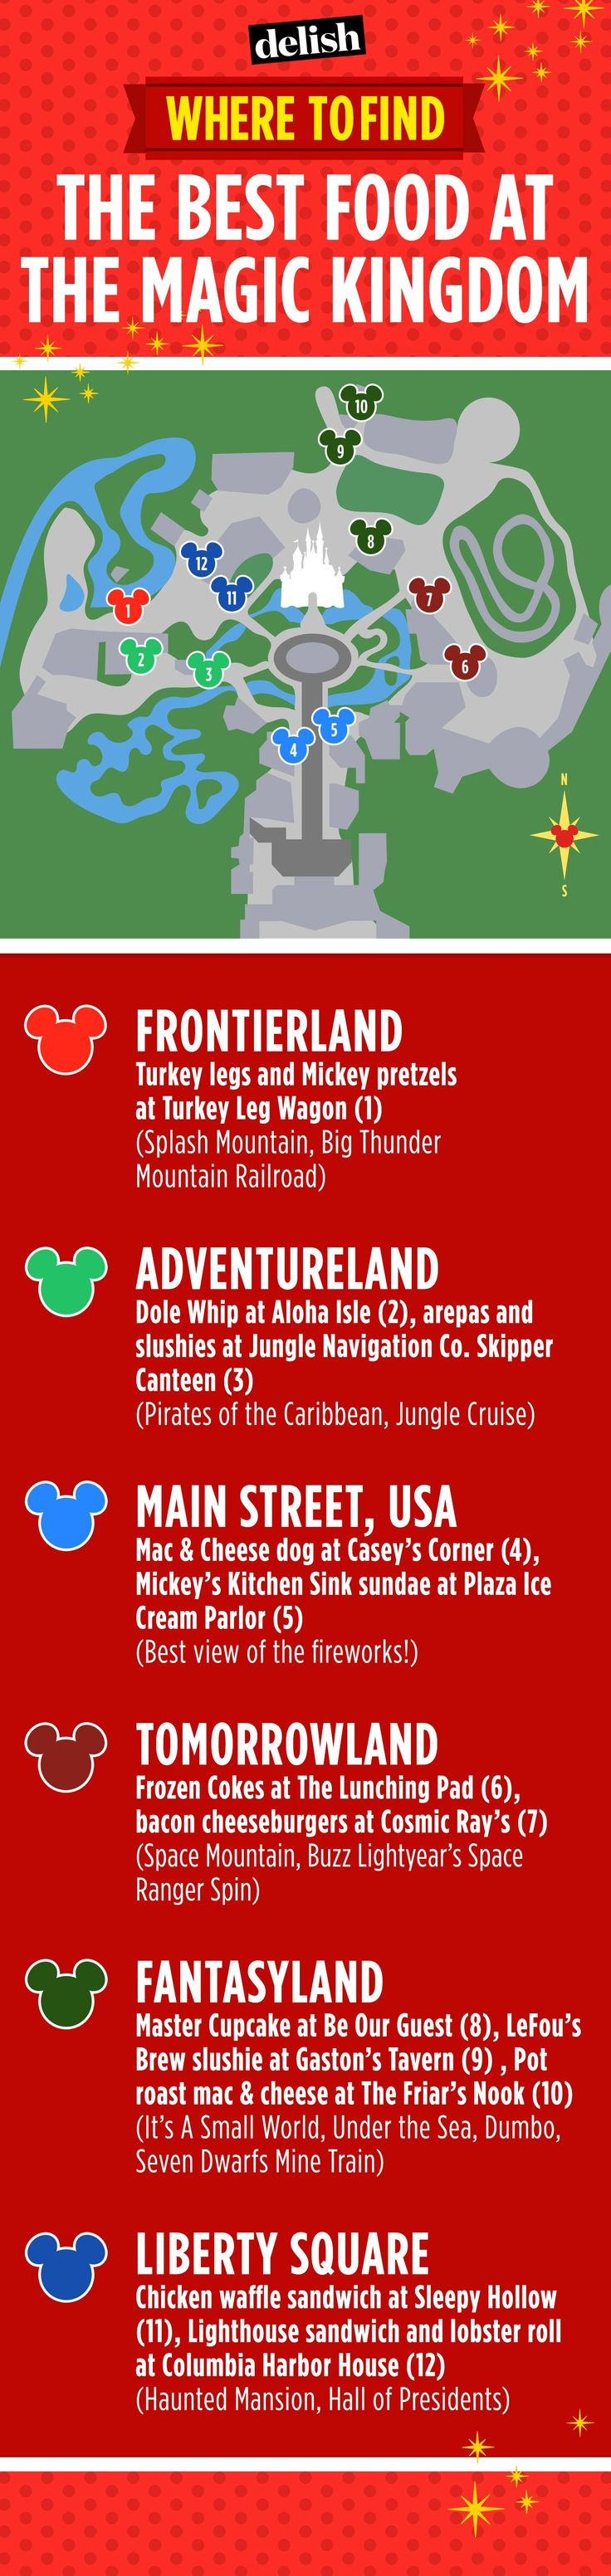 The 15 Most Delish Foods At Magic Kingdom